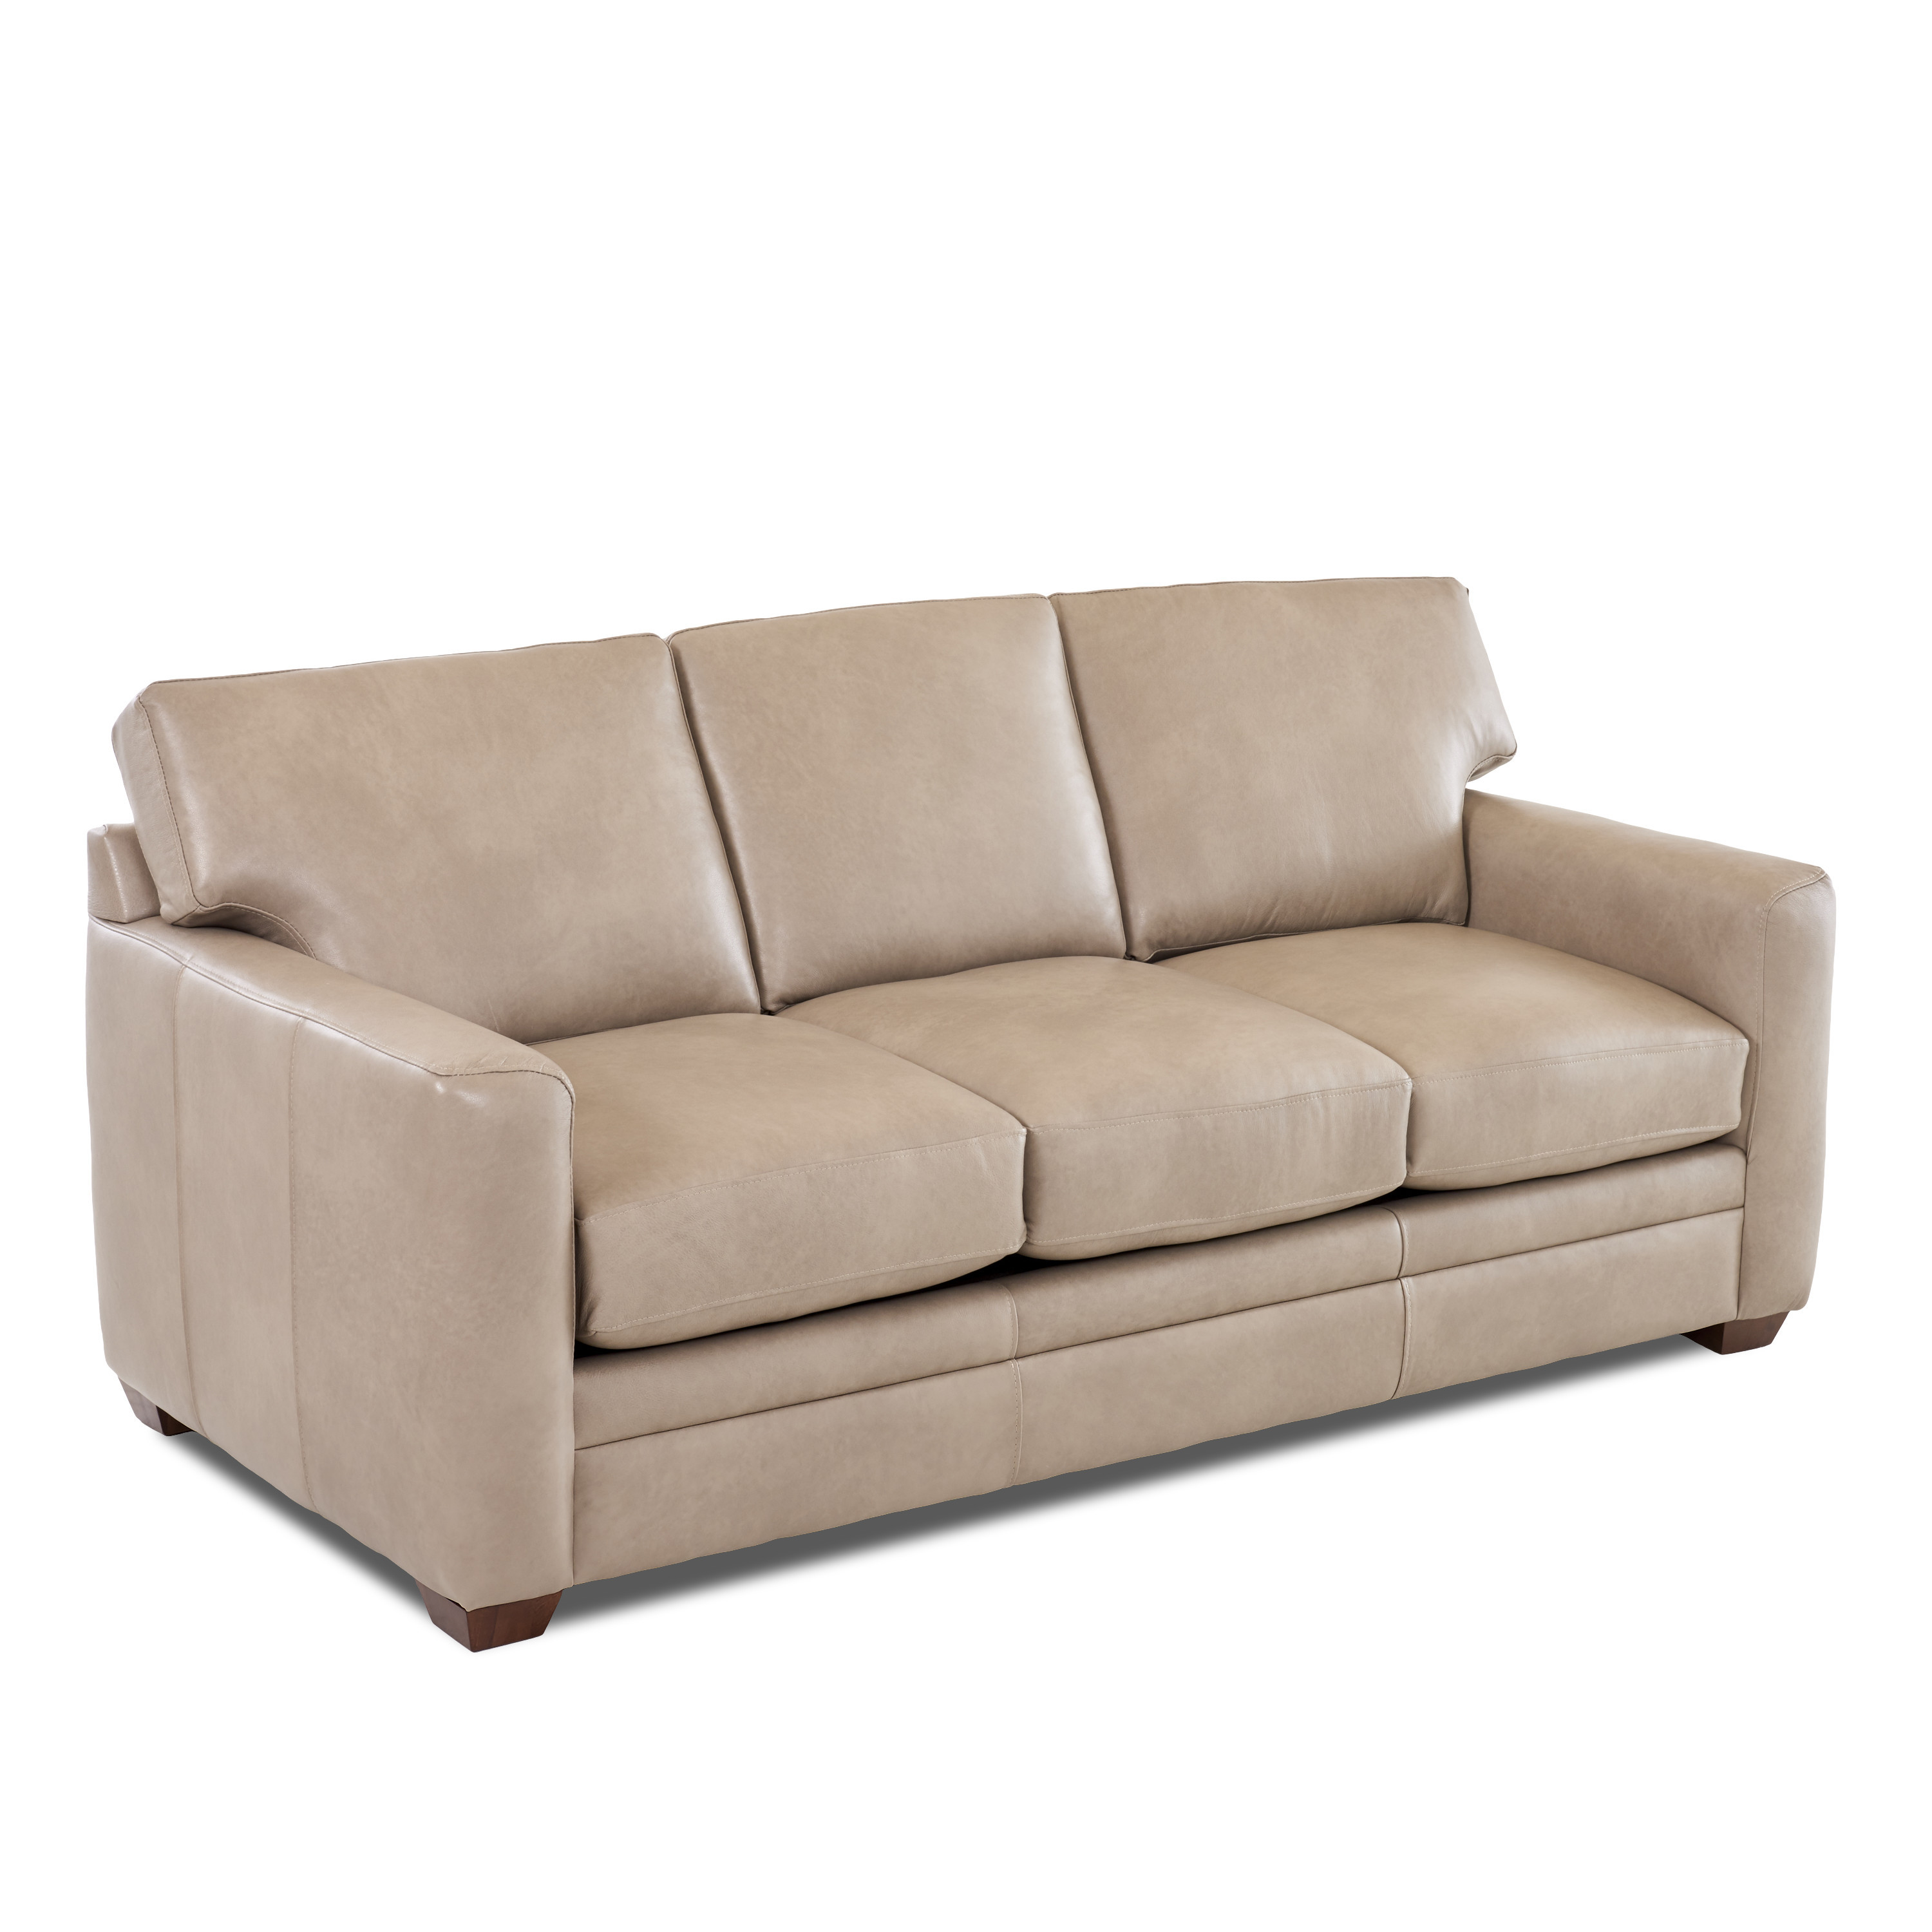 Best ideas about Wayfair Sectional Sofa . Save or Pin Wayfair Custom Upholstery Carleton Leather Sofa & Reviews Now.